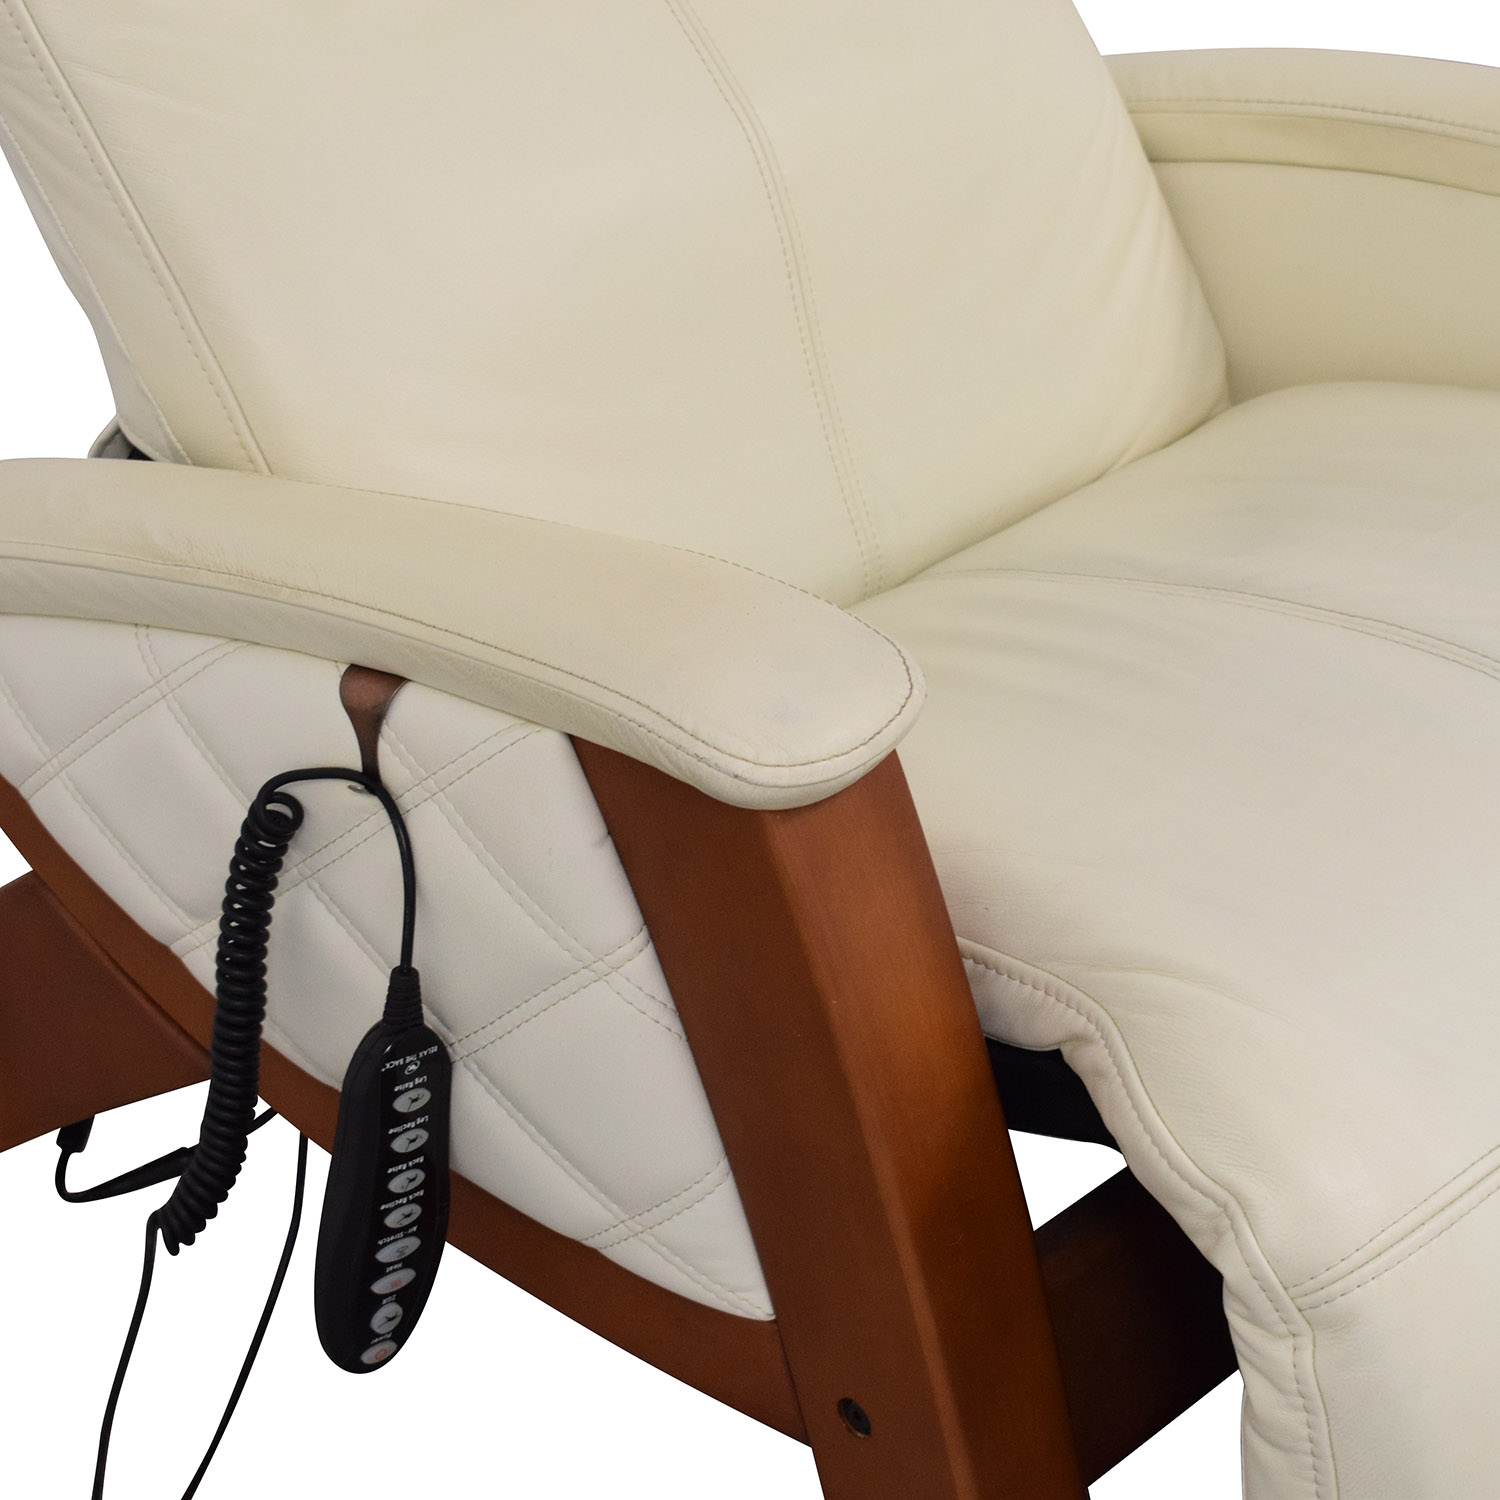 Relax The Back Relax The Back Electro Lounge Chair price